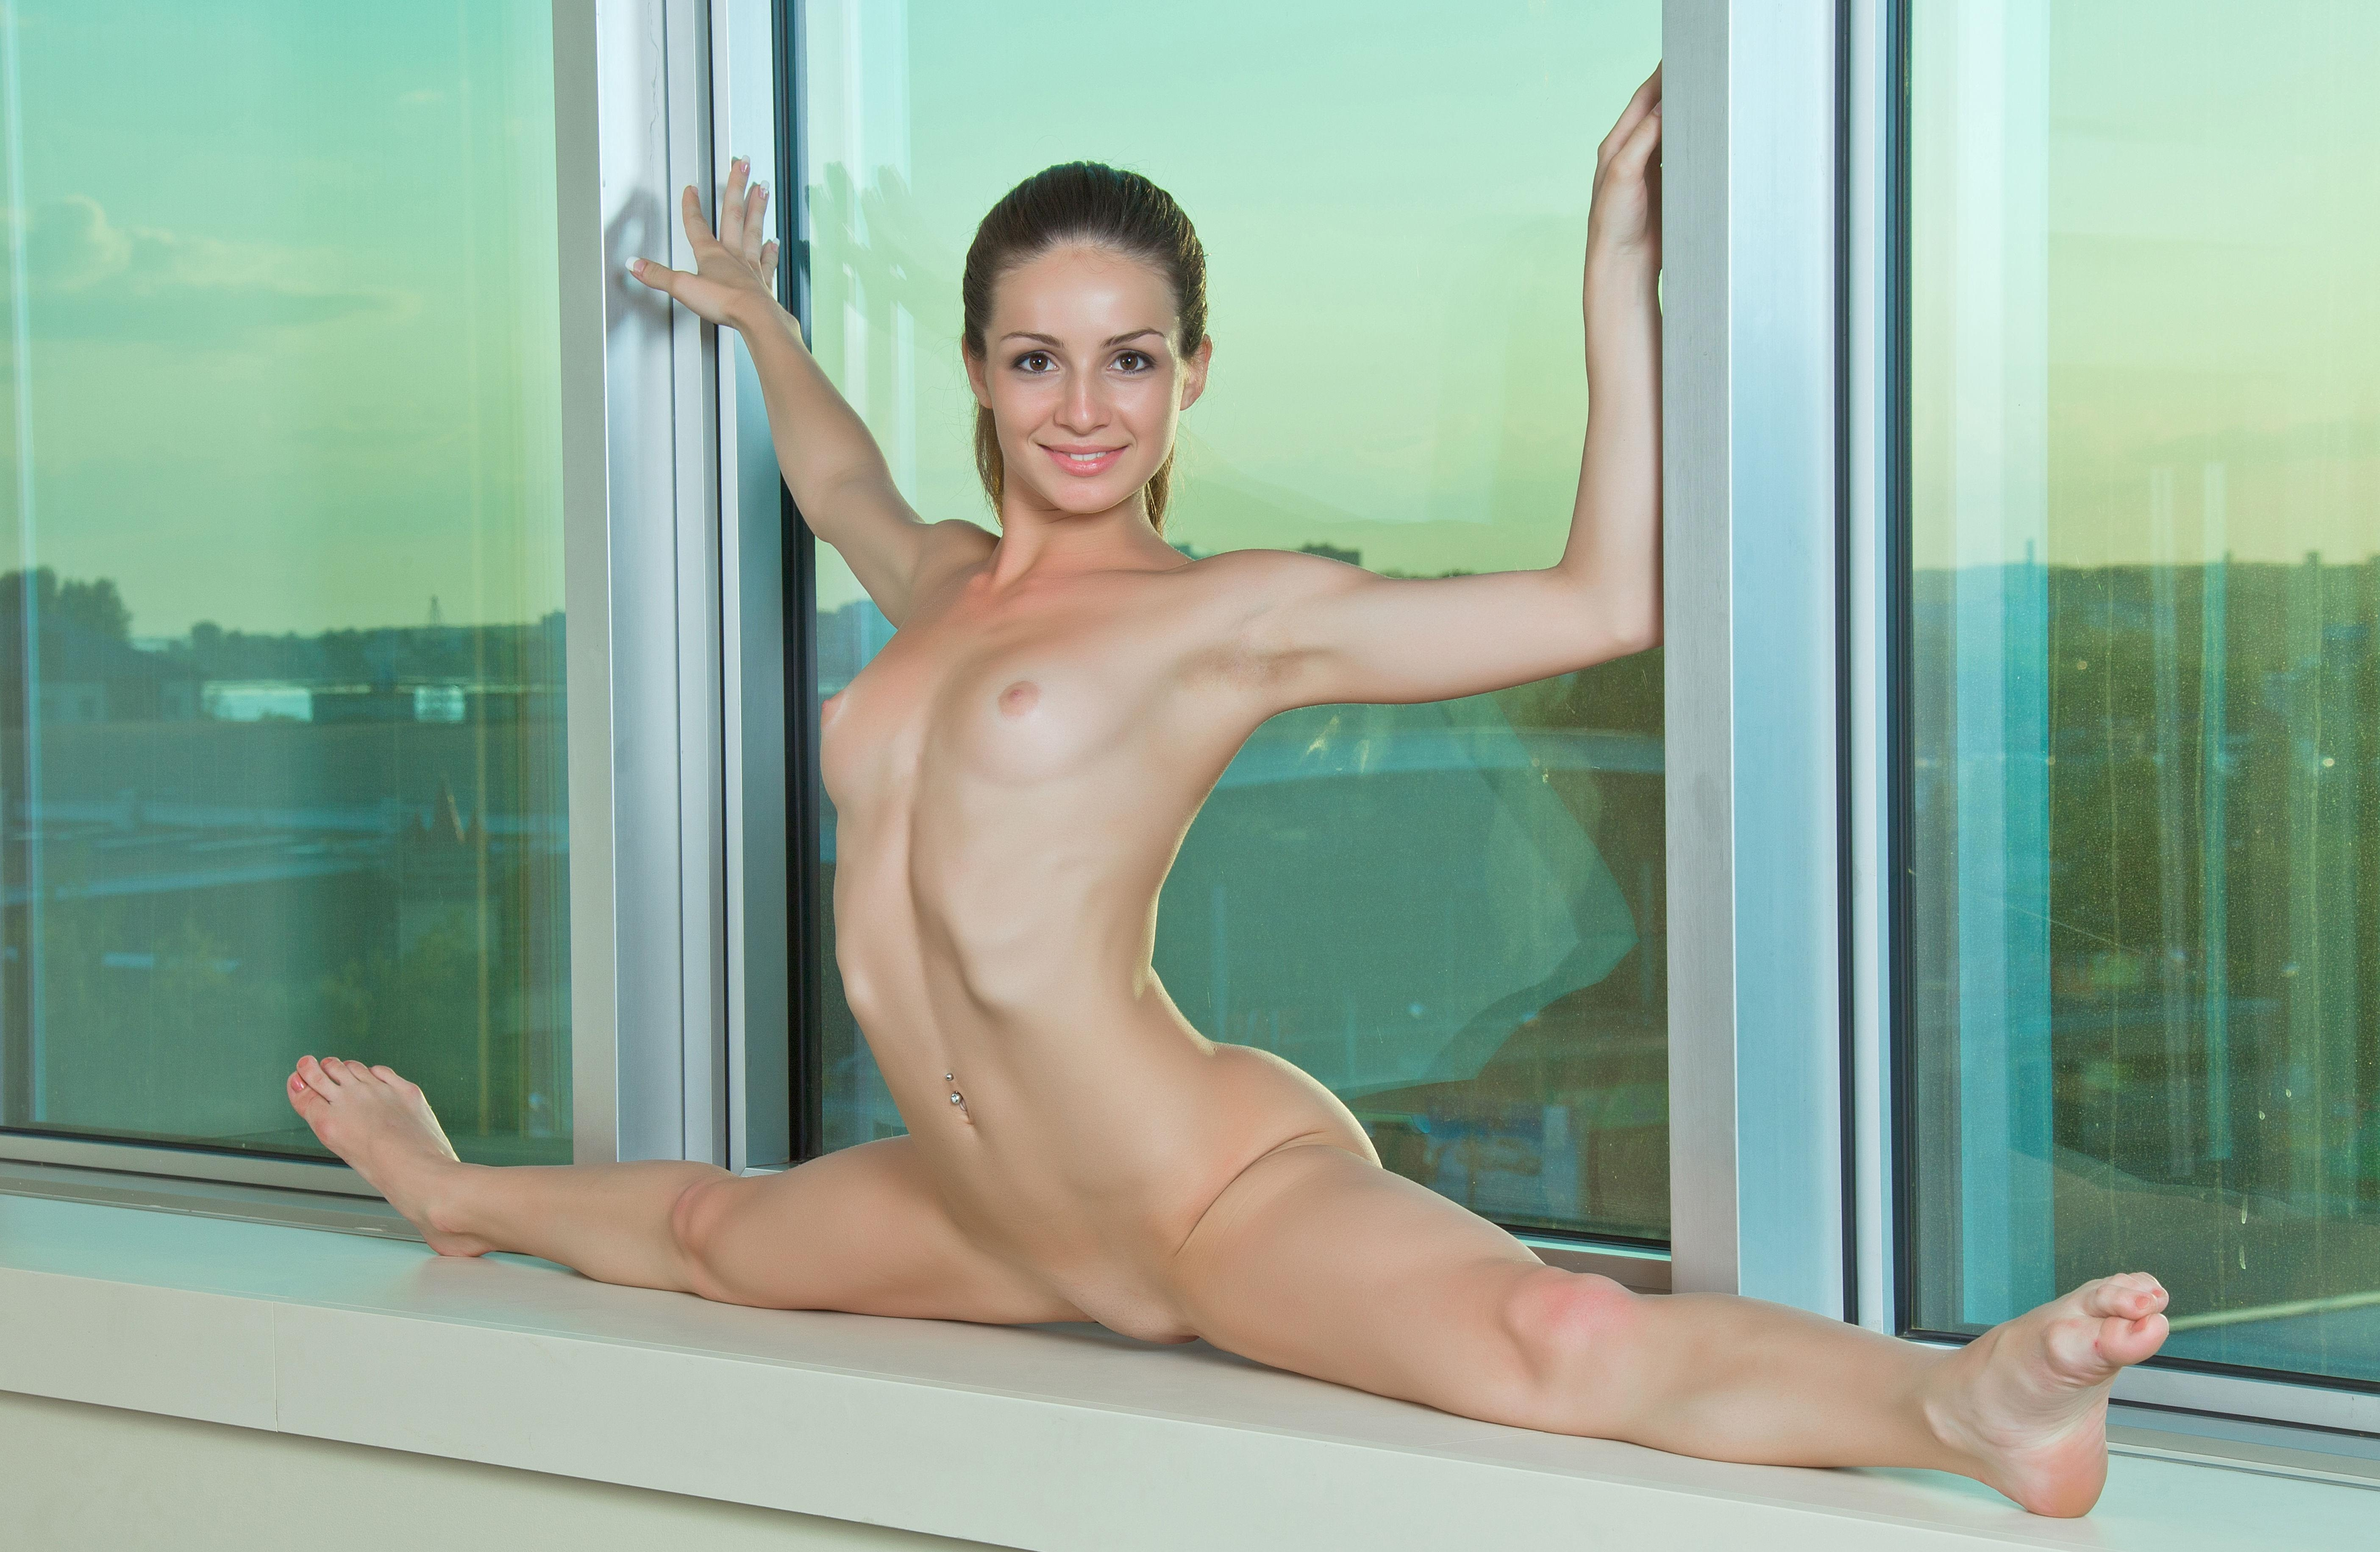 Flexible girl susana shows trimmed pussy and small boobs